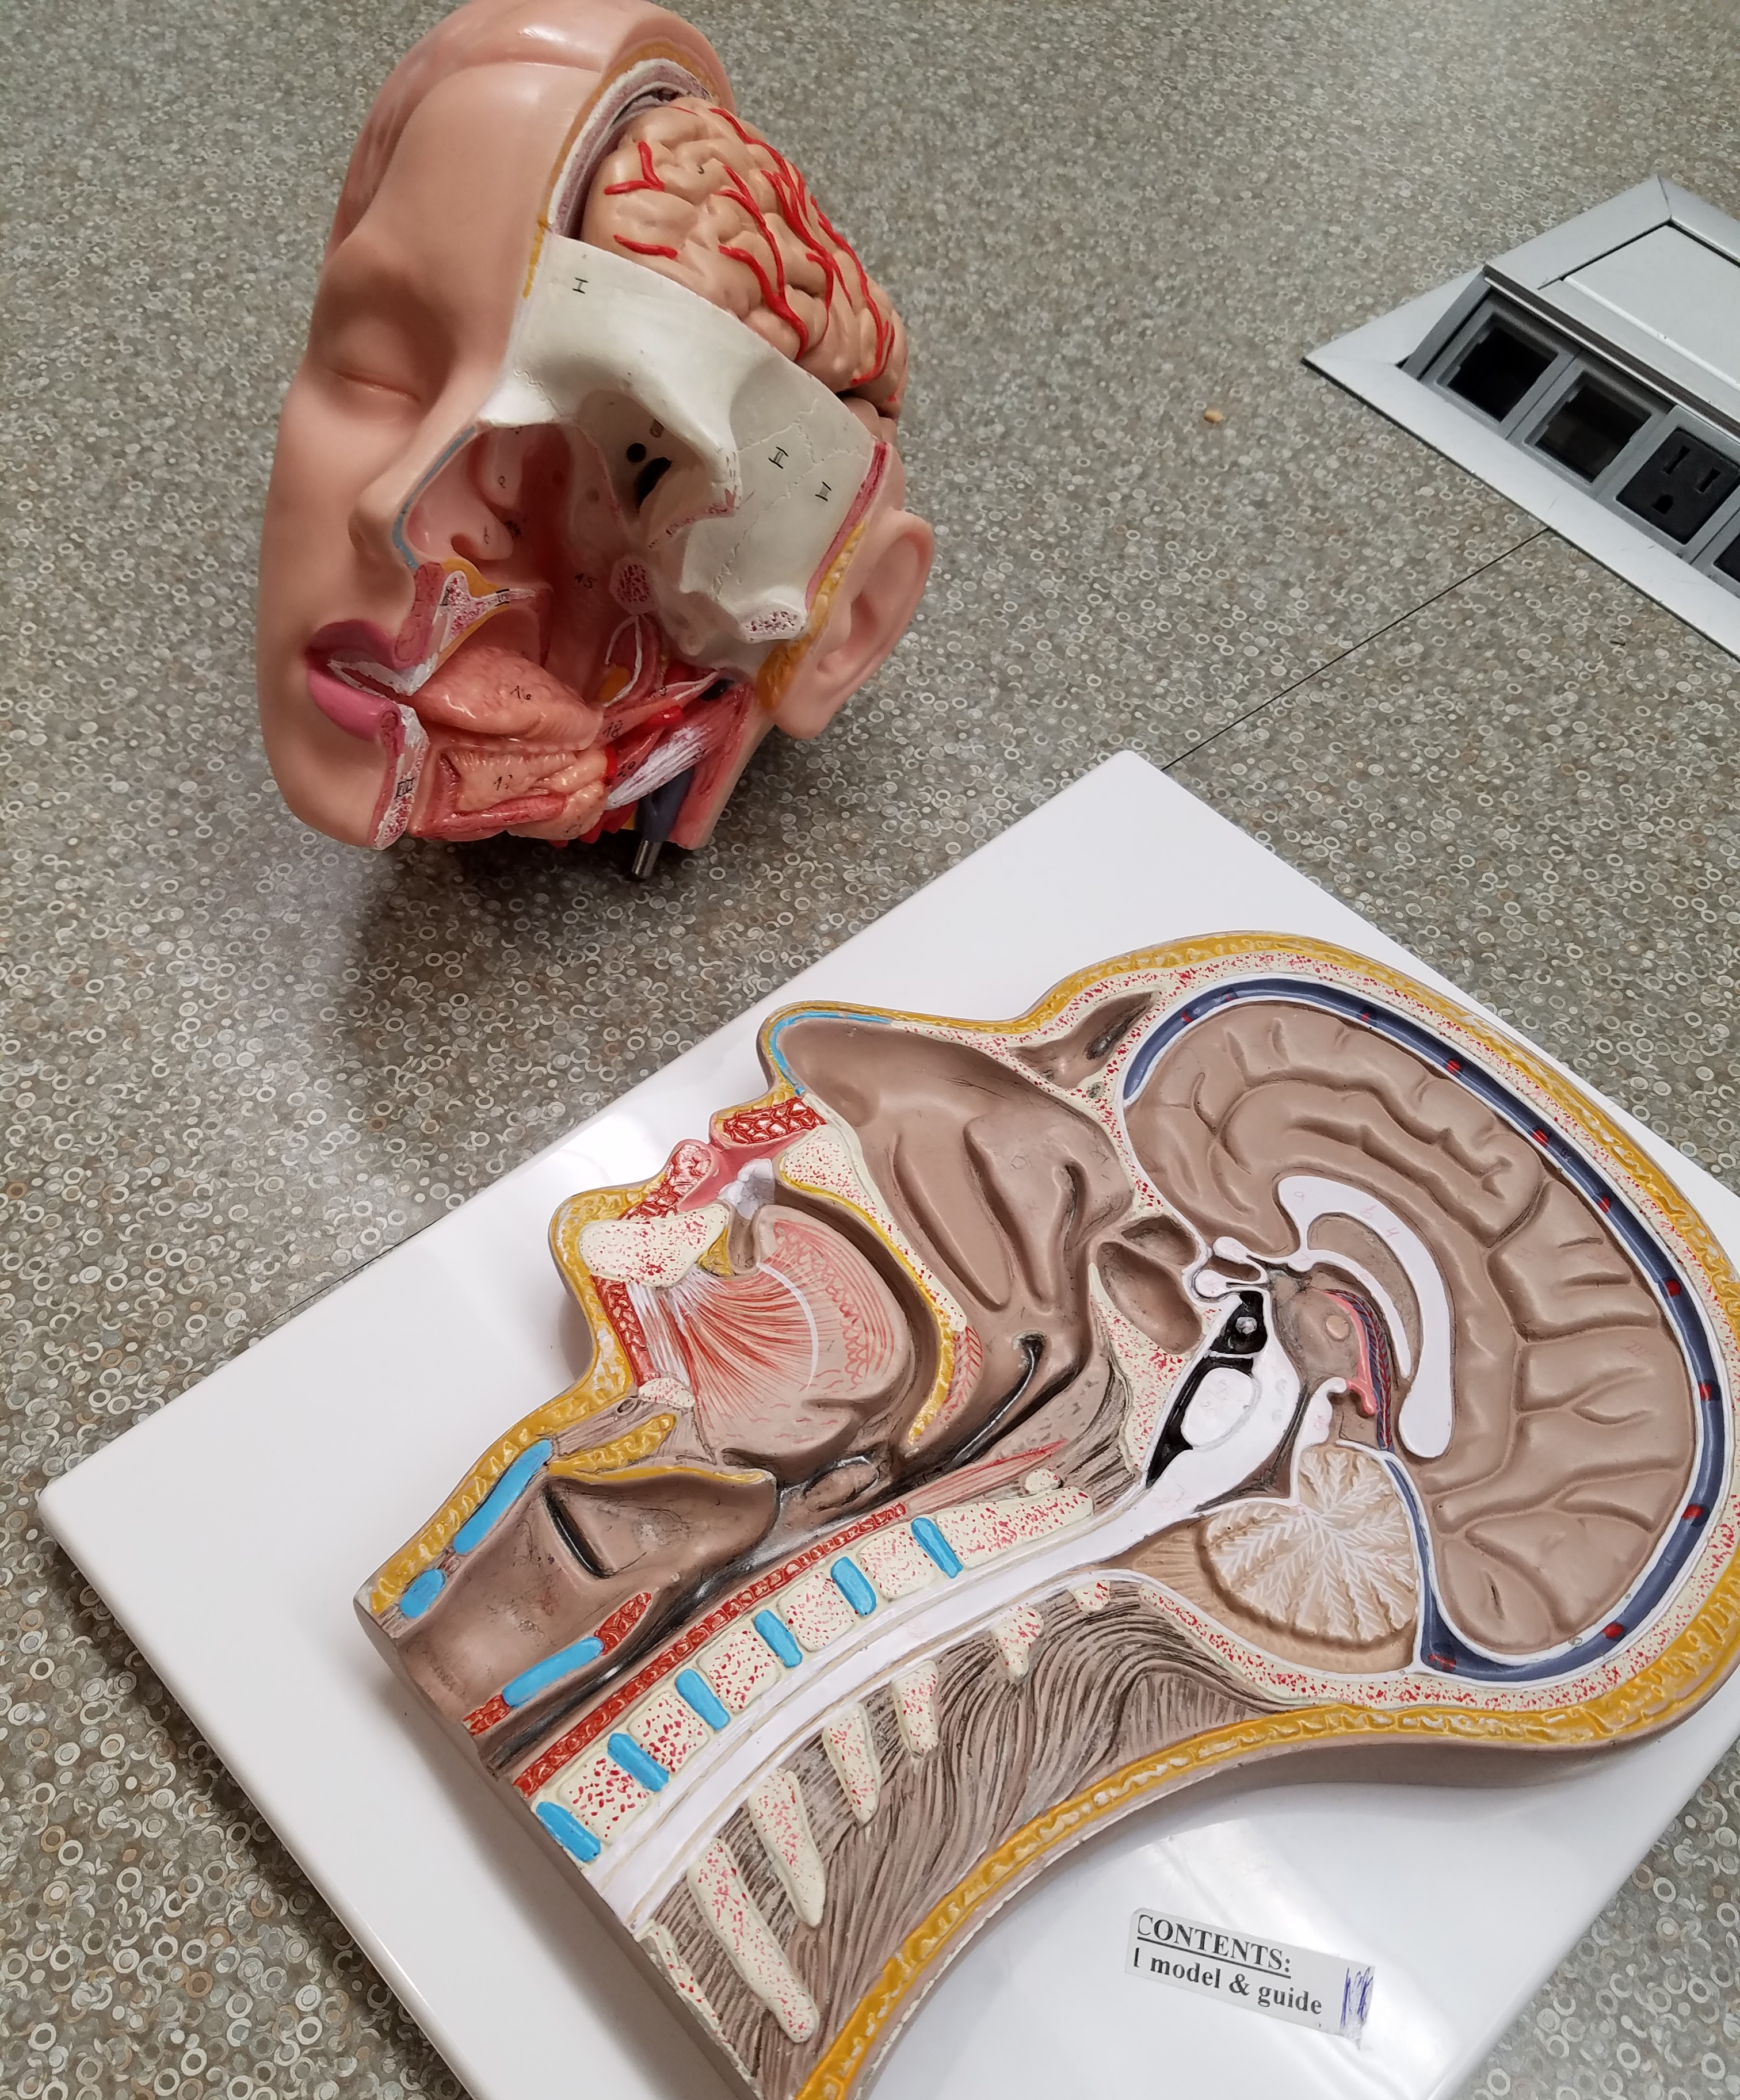 Anatomy room head part display